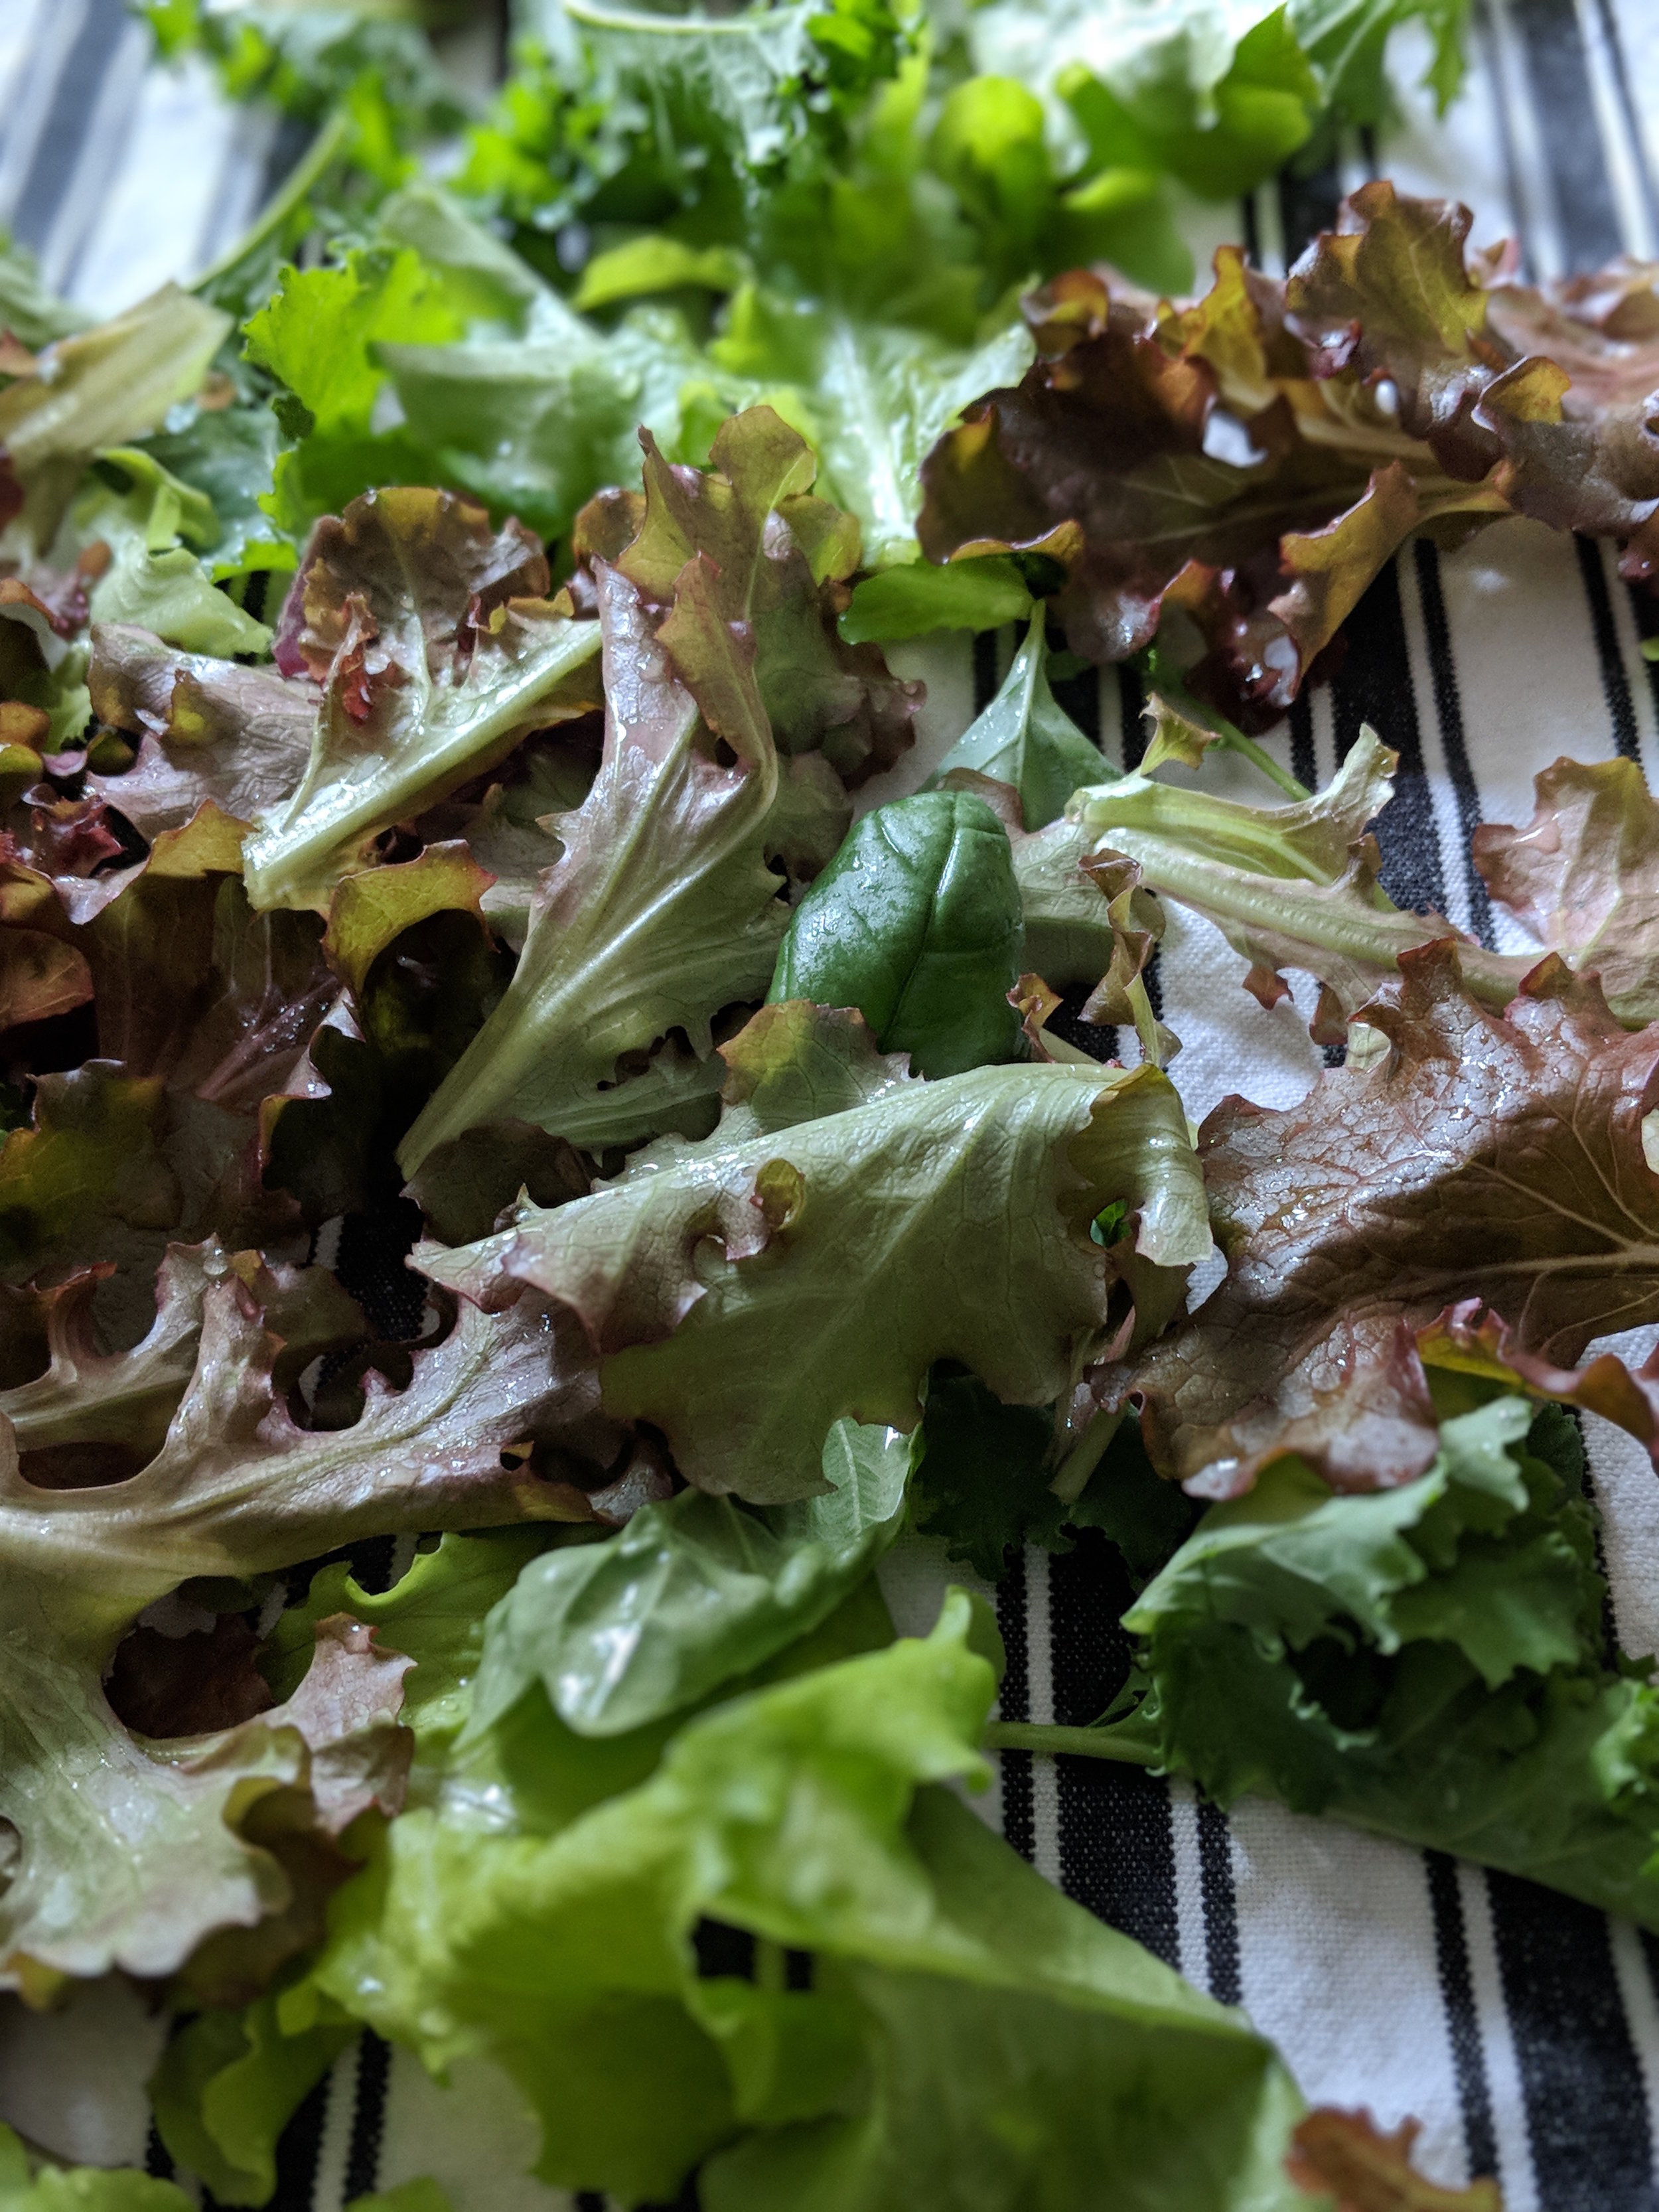 Greens from our own garden! I am NOT a green thumb, but I'm working on it because a salad made from the lettuce we grow is incredibly rewarding.